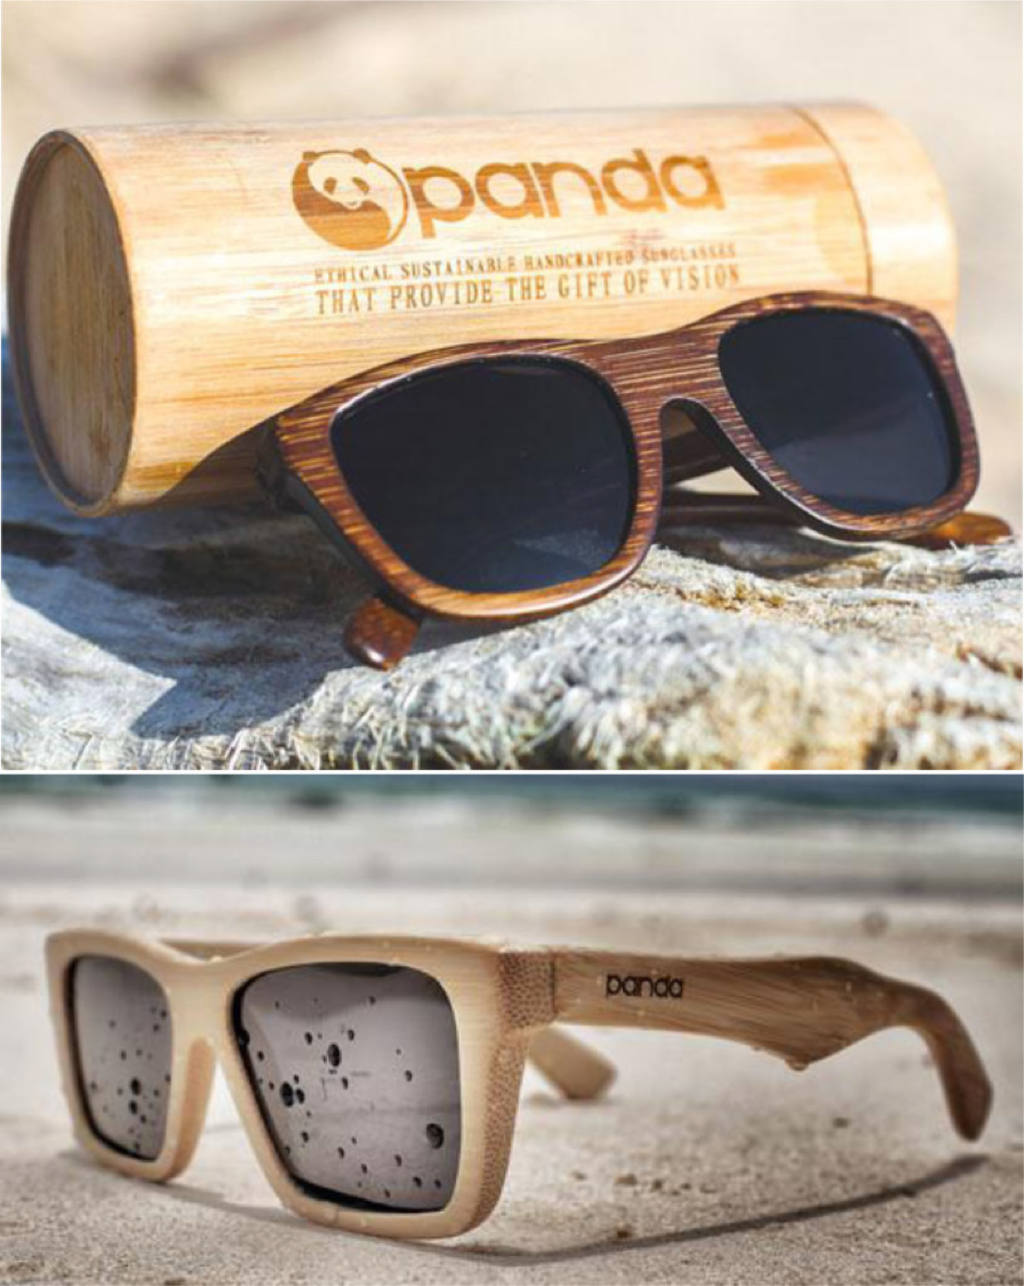 sunglasses, trends summer 2017, accessories summer 2017, the best sunglasses summer 2017, ecofriendly sunglasses, eco sunglasses, ethical sunglasses, gafas de sol ecológicas, gafas de sol sostenibles, sustainable sunglasses, Aptitude, Solo Eyewear, Panda, Hemp Eyewear, Bamboozz, Wooed, Moat House Eyewear, Colin Leslie, Proof, , Dick Moby, Drift, Feb31, bohten, luxiders magazine, eco fashion magazine